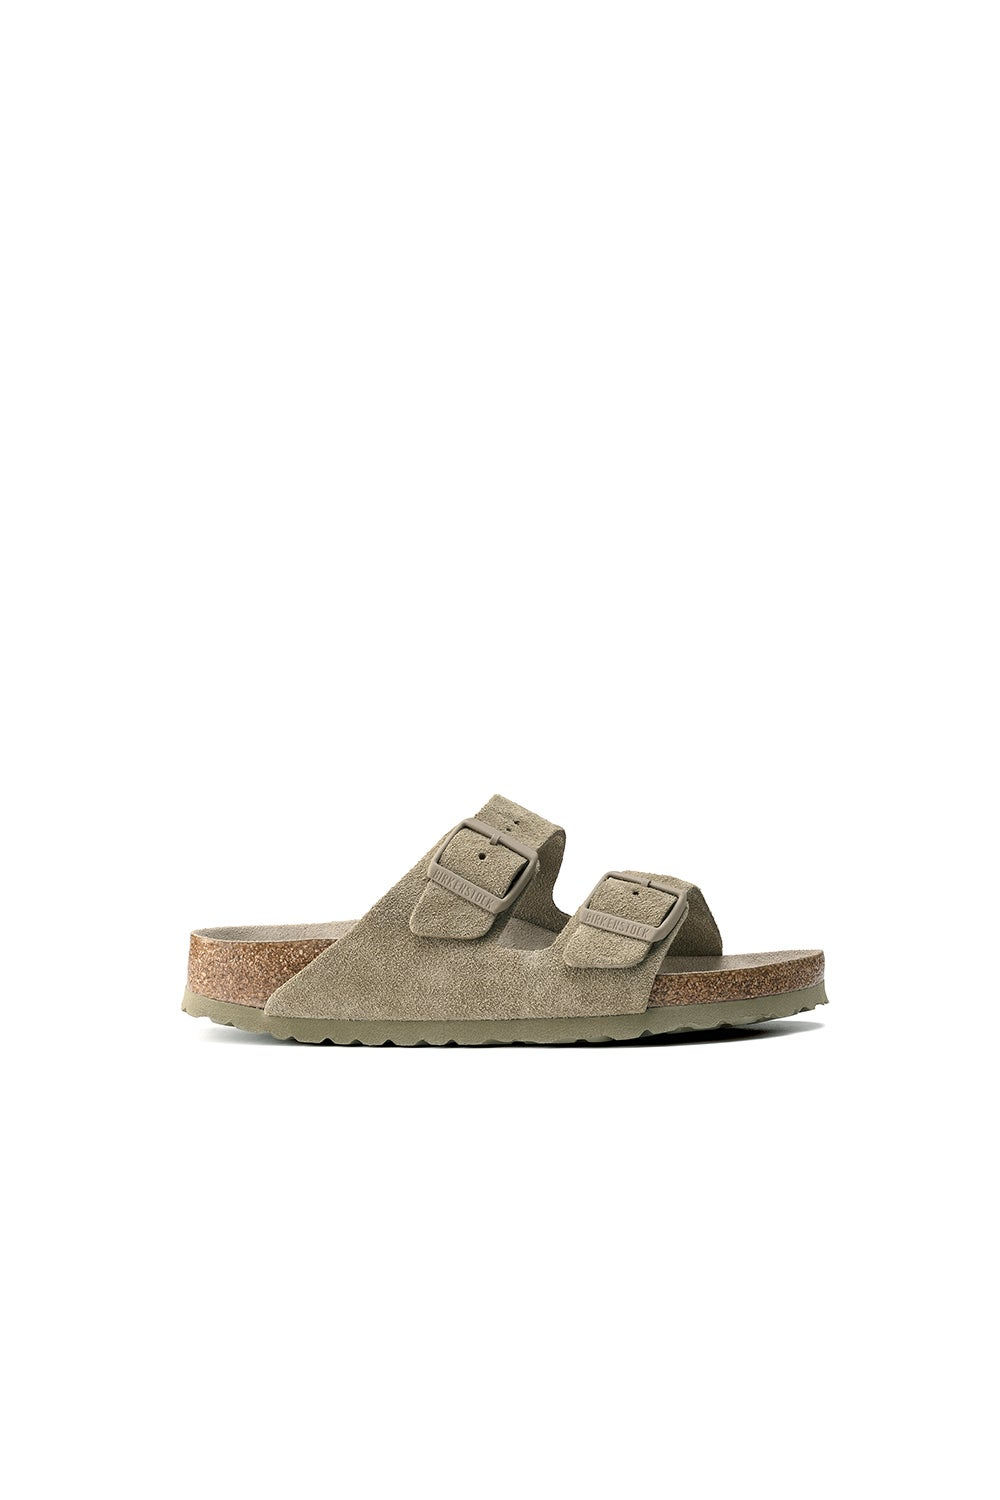 Birkenstock Arizona SFB Suede Faded Khaki